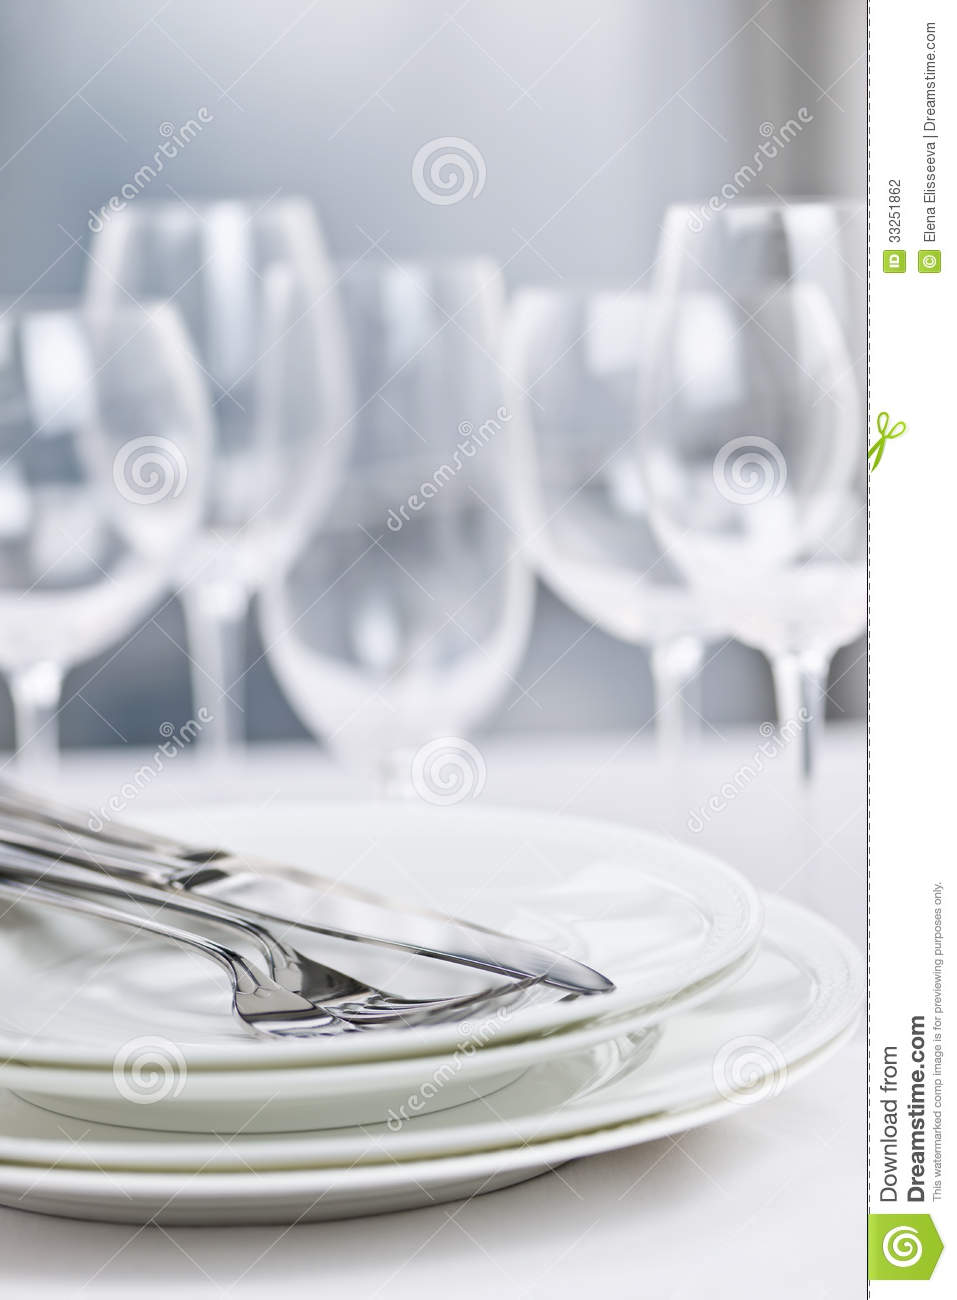 Plates and cutlery stock photo image of silver knives for Fine dining table setting